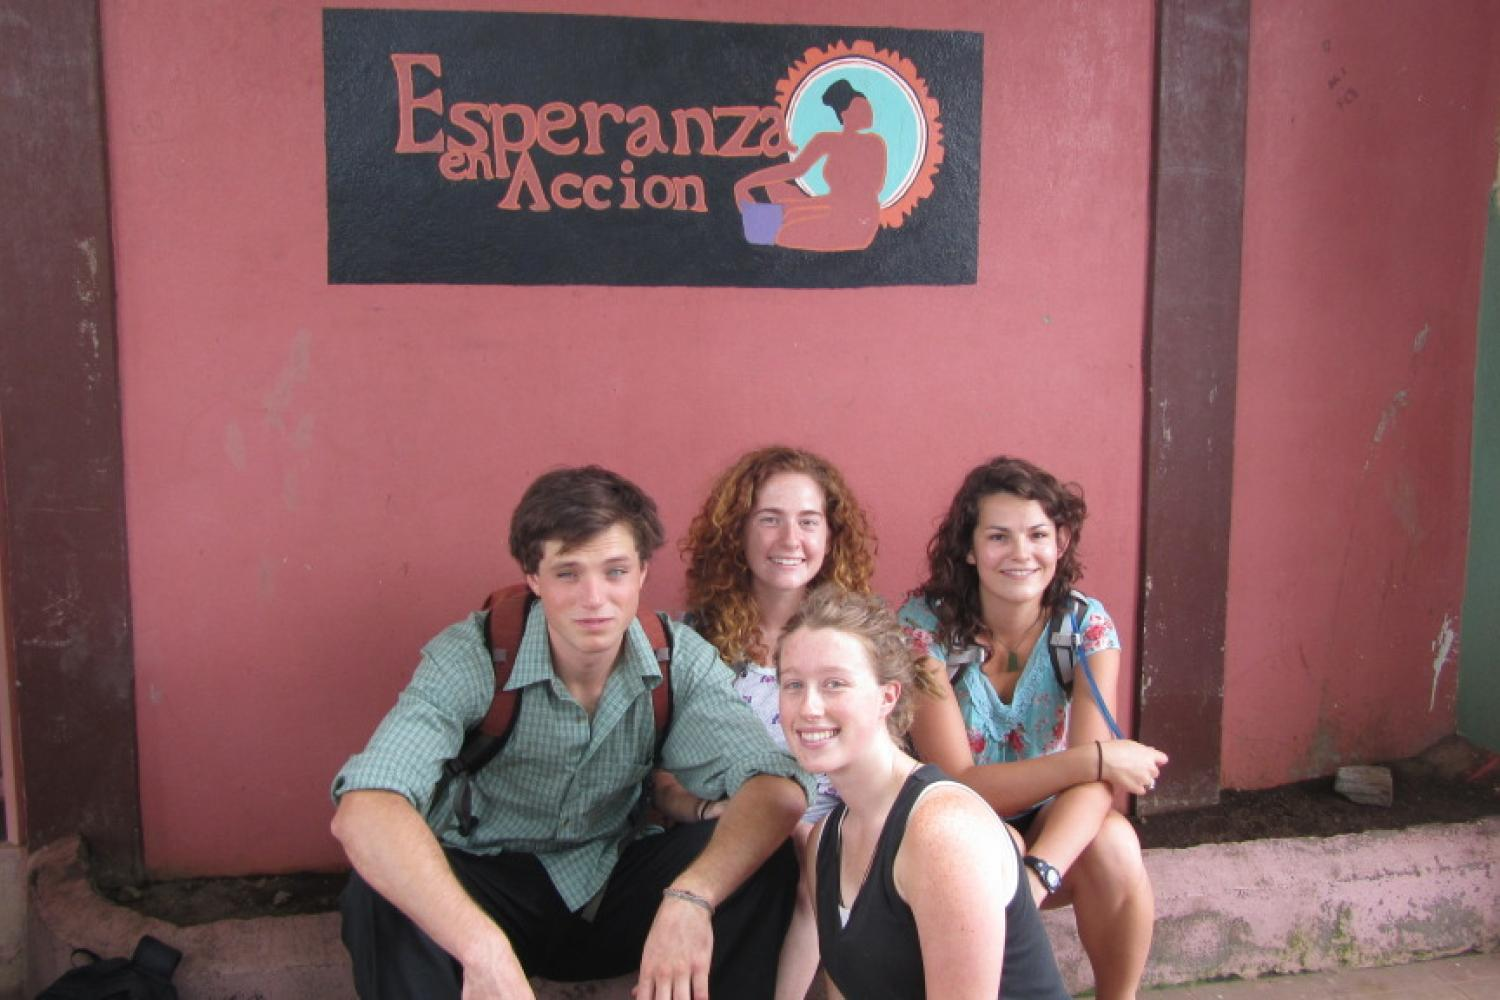 Students in front of a sign